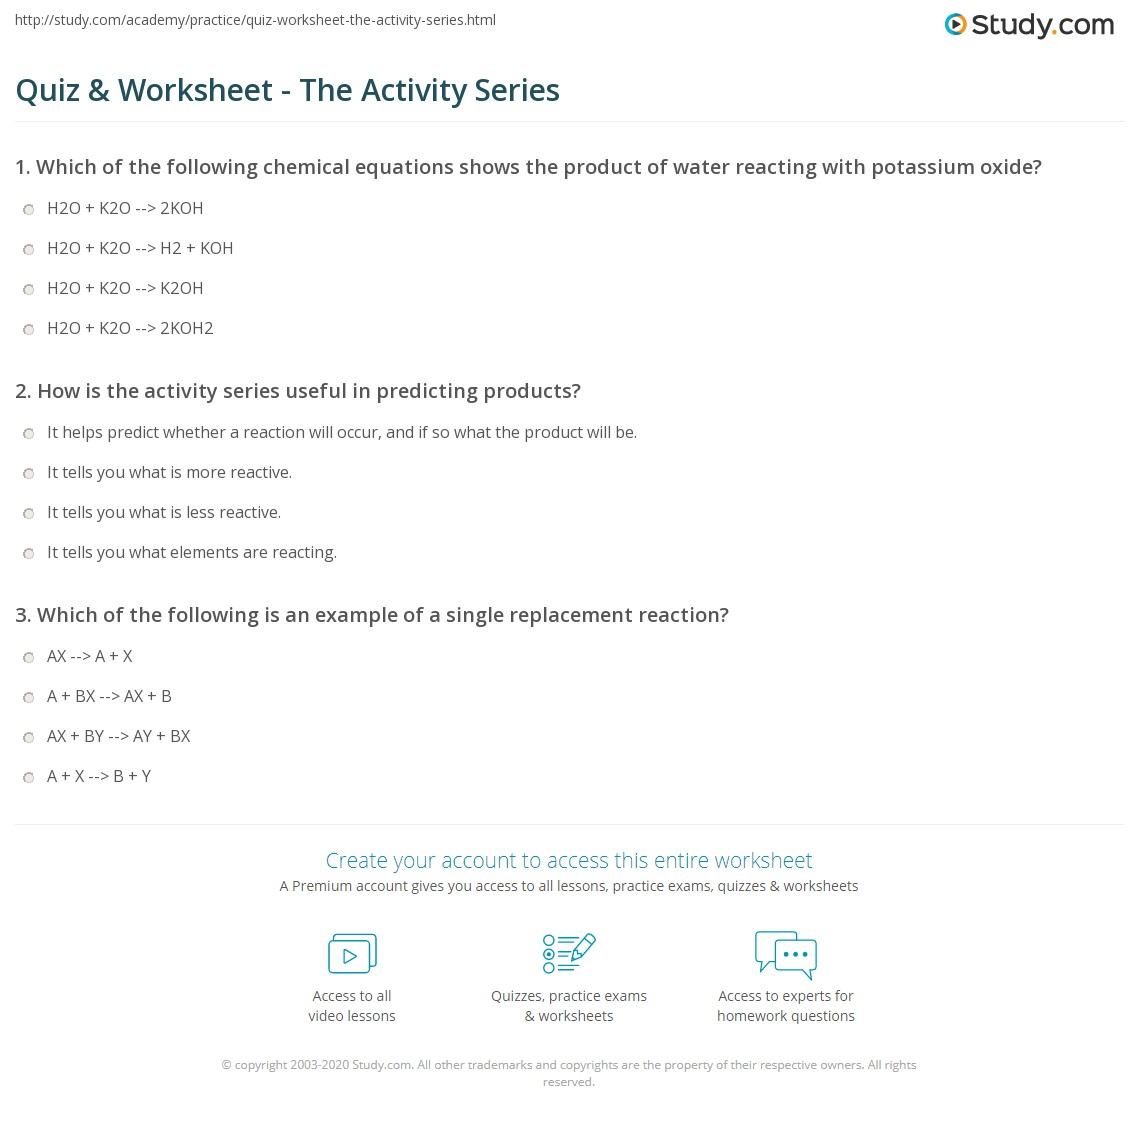 Aldiablosus  Nice Quiz Amp Worksheet  The Activity Series  Studycom With Lovable Print The Activity Series Predicting Products Of Single Displacement Reactions Worksheet With Alluring Gr  Worksheets Also Th Grade Math Worksheets Printable Free In Addition Indirect Questions Worksheet And Verbs Worksheets For Grade  As Well As Handwriting Worksheets Ks Additionally Months Of The Year Printable Worksheets From Studycom With Aldiablosus  Lovable Quiz Amp Worksheet  The Activity Series  Studycom With Alluring Print The Activity Series Predicting Products Of Single Displacement Reactions Worksheet And Nice Gr  Worksheets Also Th Grade Math Worksheets Printable Free In Addition Indirect Questions Worksheet From Studycom